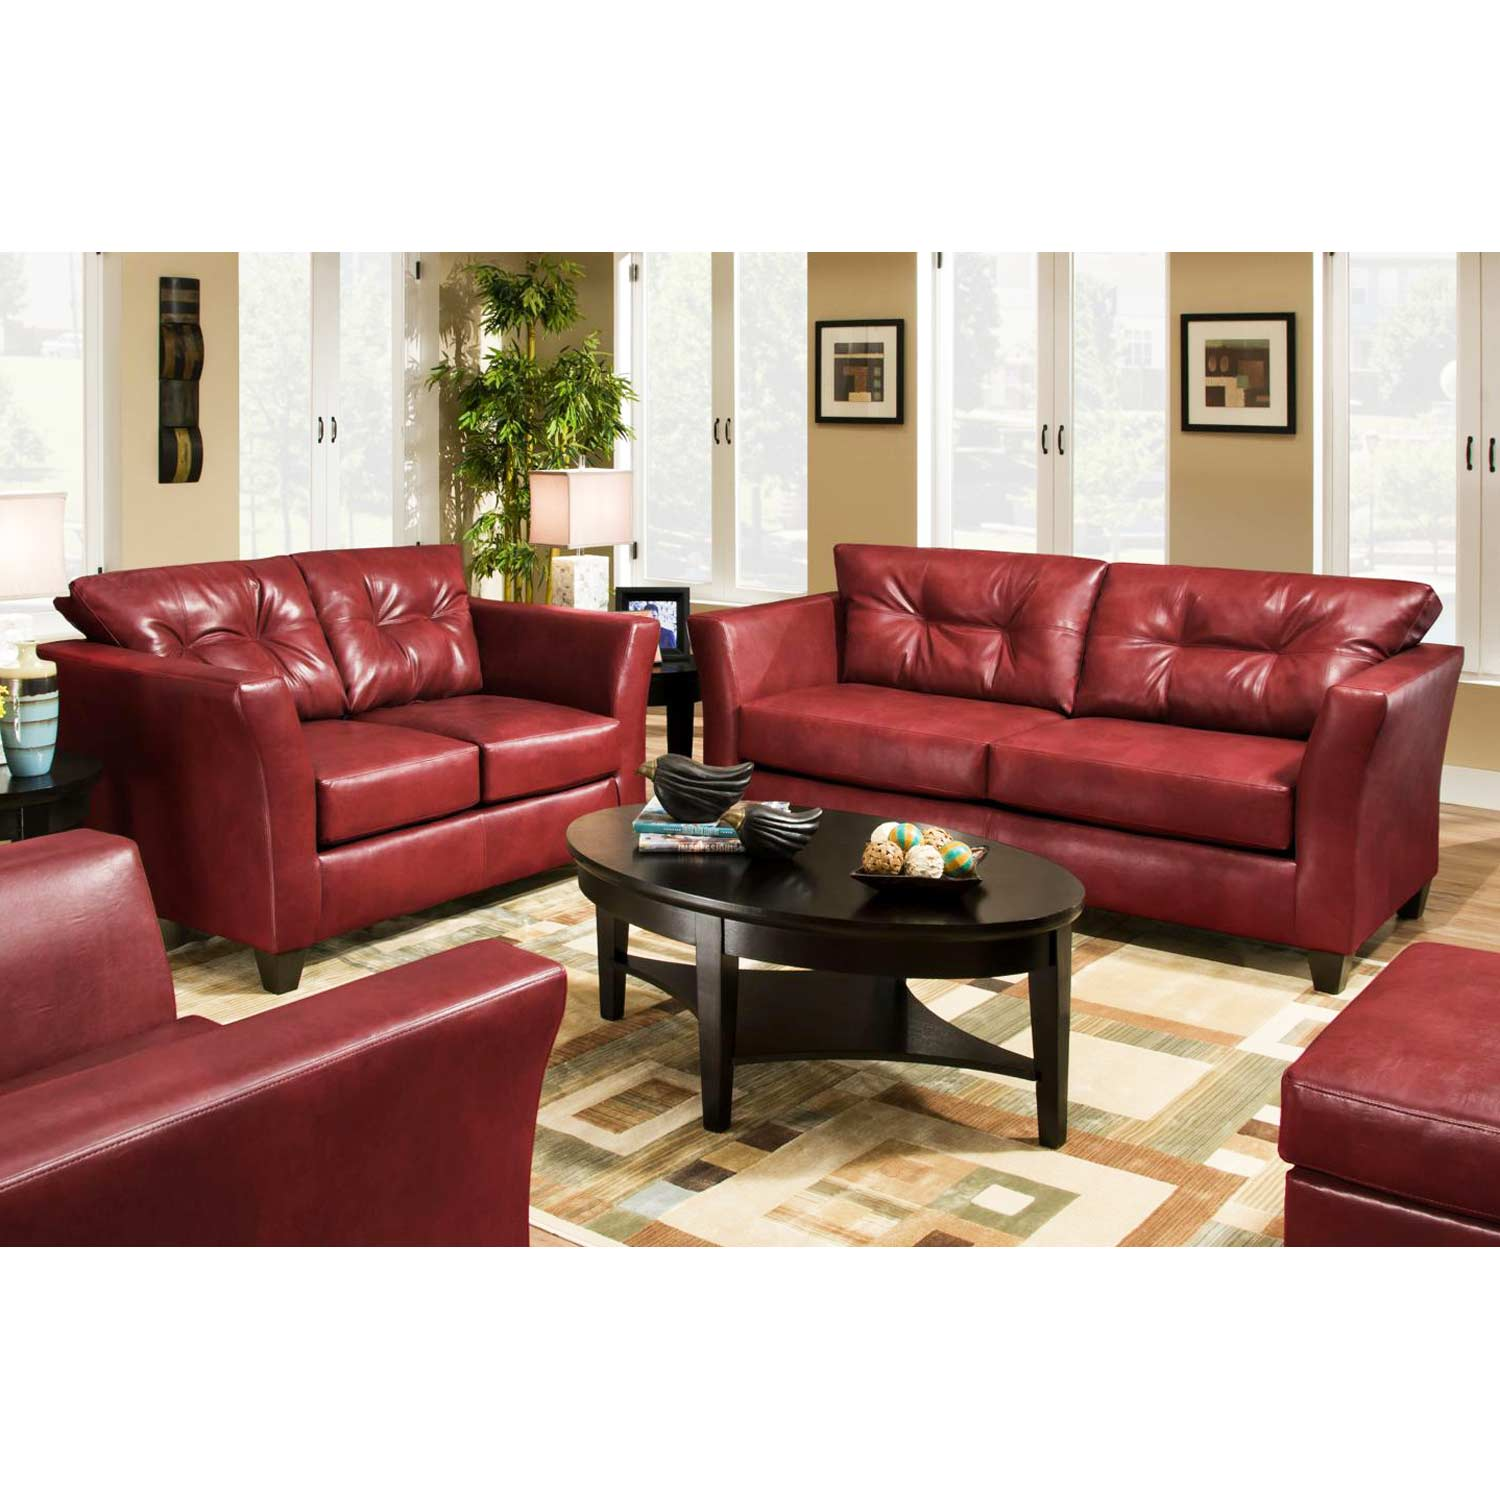 Del Mar Tufted Leather Loveseat - Tonto Strawberry - CHF-184502-5122